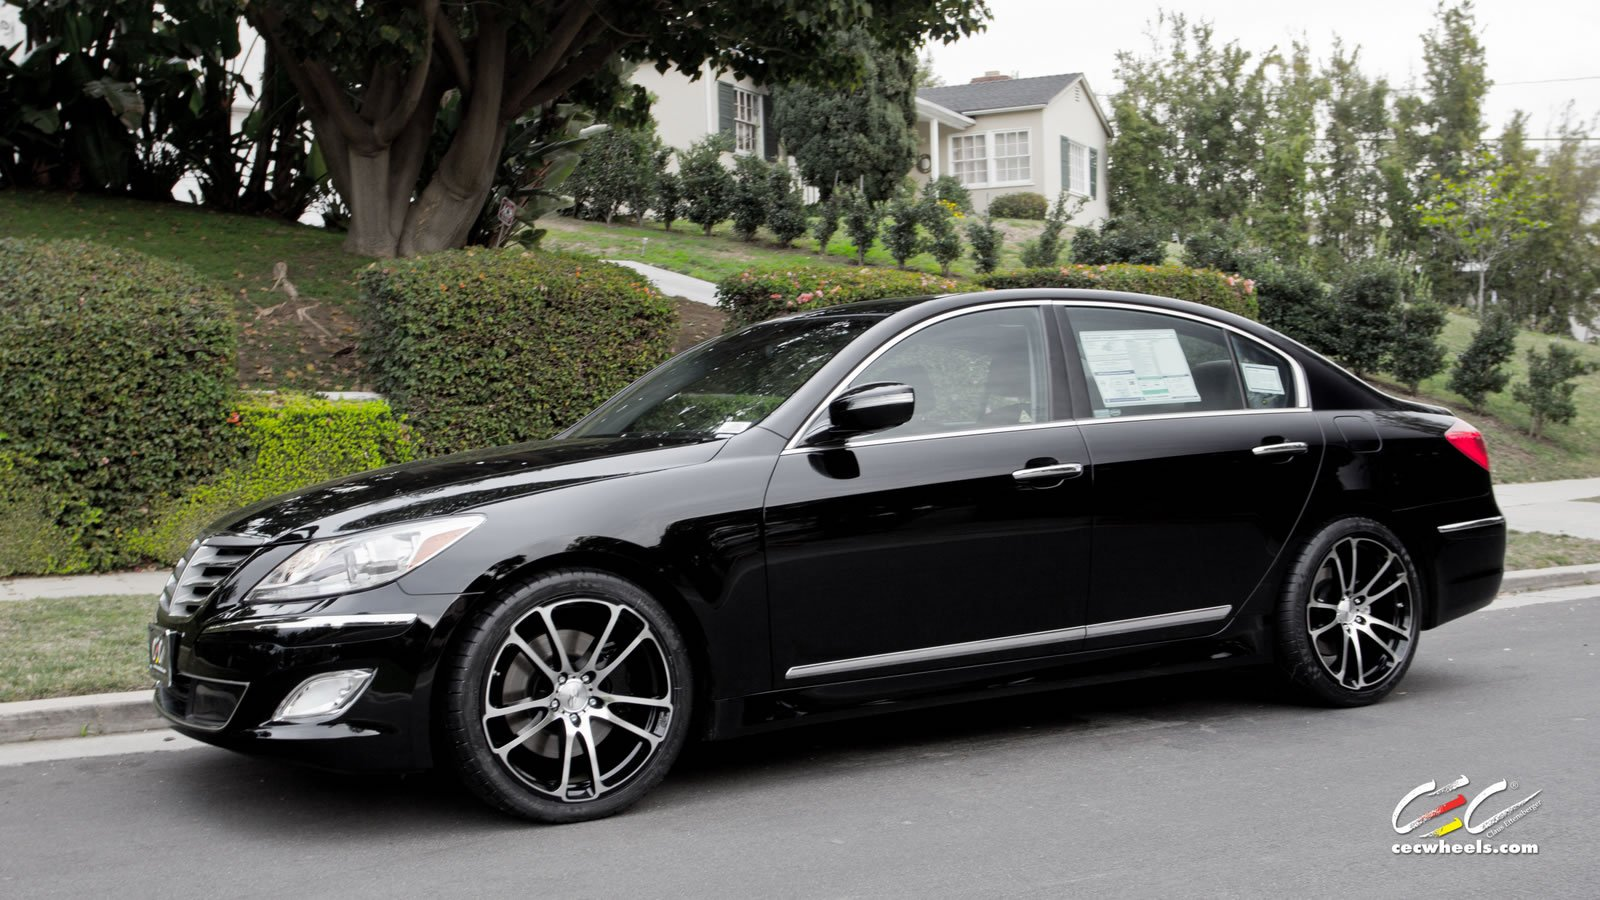 2015 Black Cars Cec Genesis Hyundai Sedan Tuning Wheels